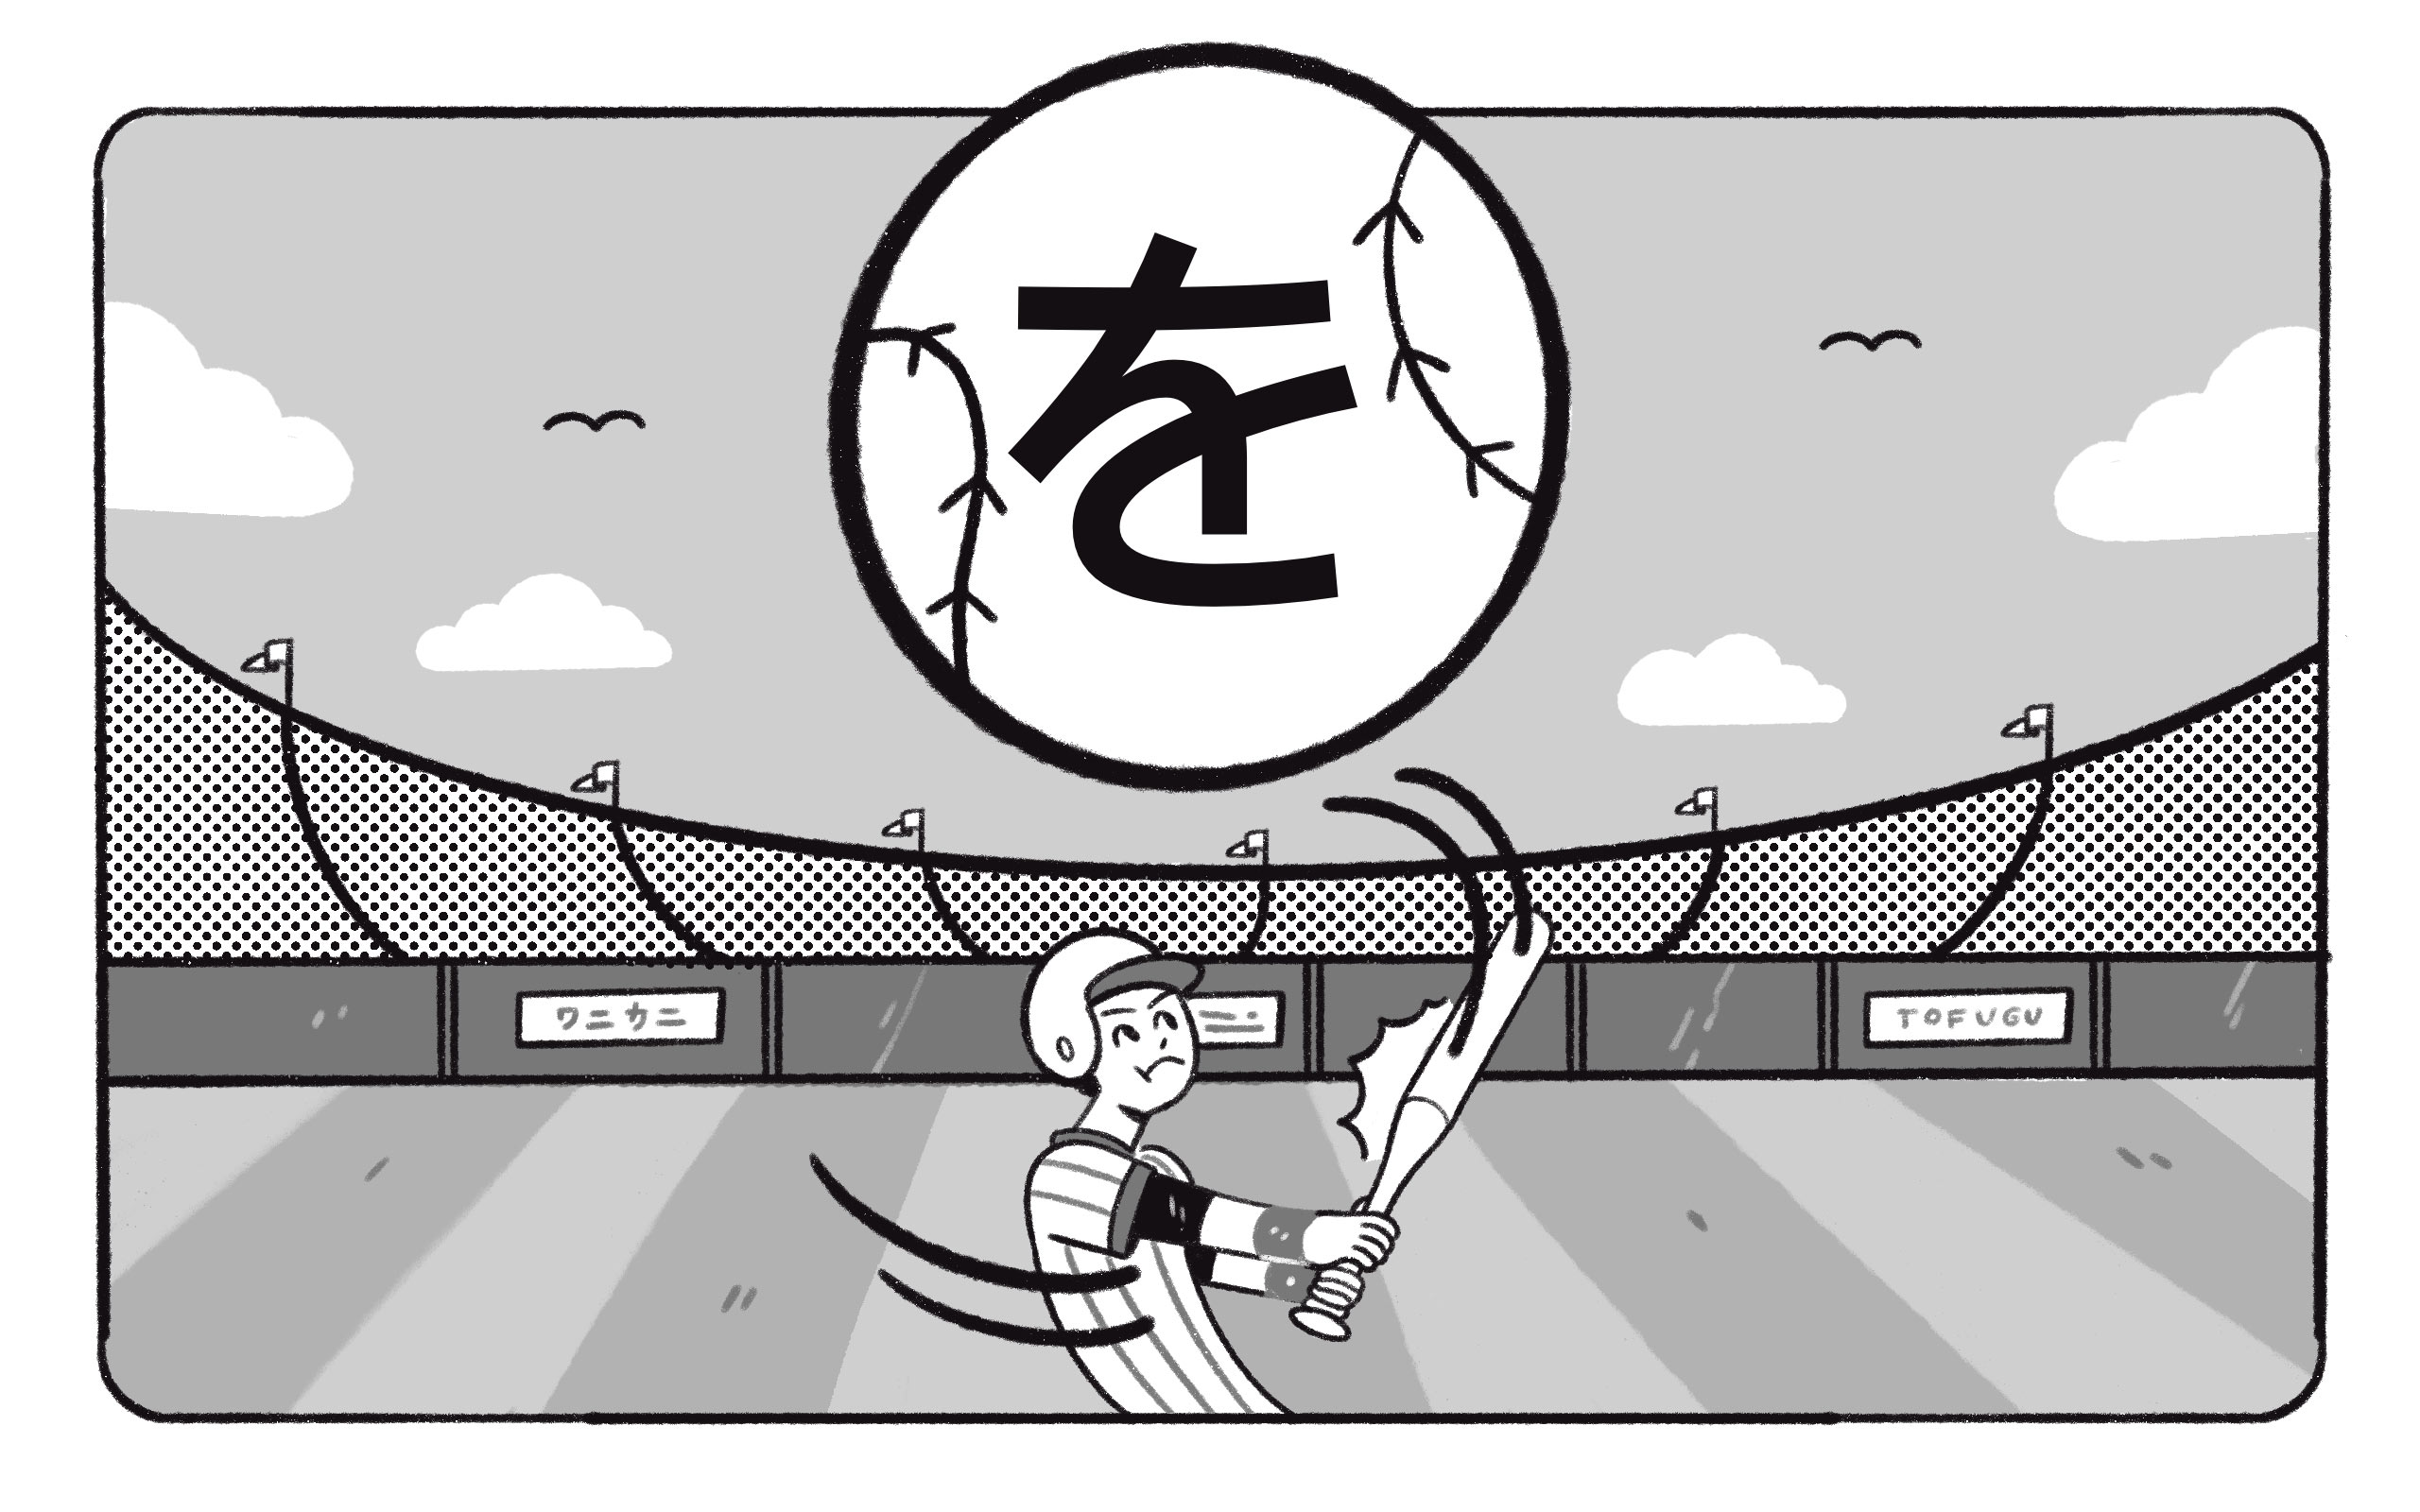 a baseball player hitting a ball with particle を written on the ball